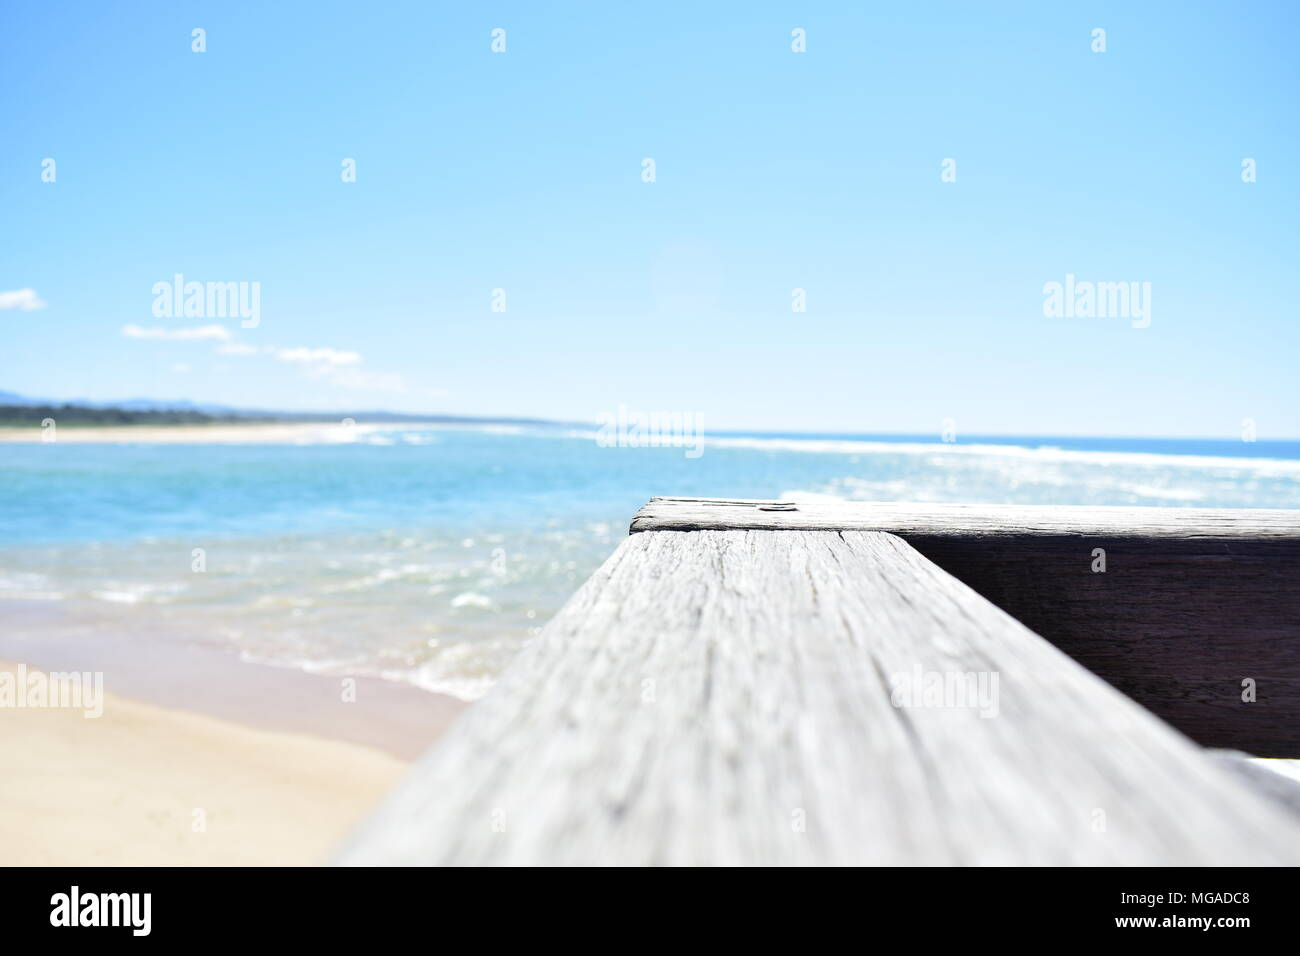 Australian beach with railing on pier on the foreground. Low depth of field, light mood. - Stock Image